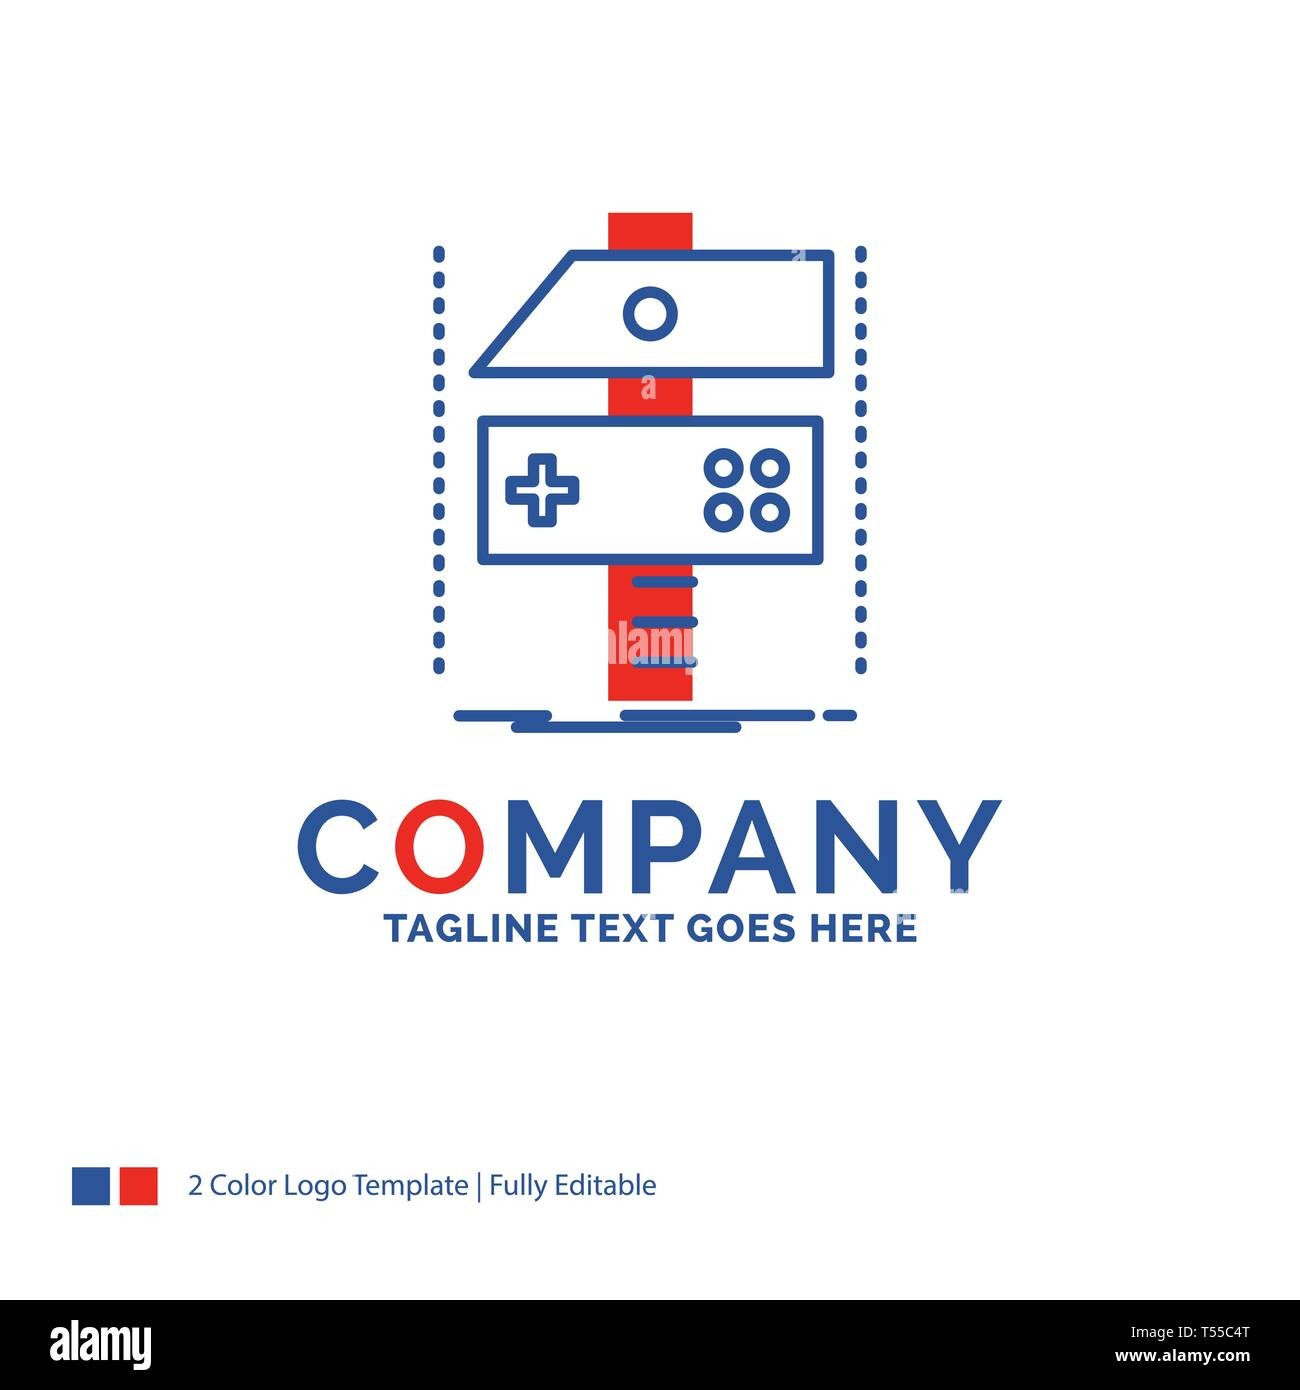 Company Name Logo Design For Build Craft Develop Developer Game Blue And Red Brand Name Design With Place For Tagline Abstract Creative Logo Tem Stock Vector Image Art Alamy